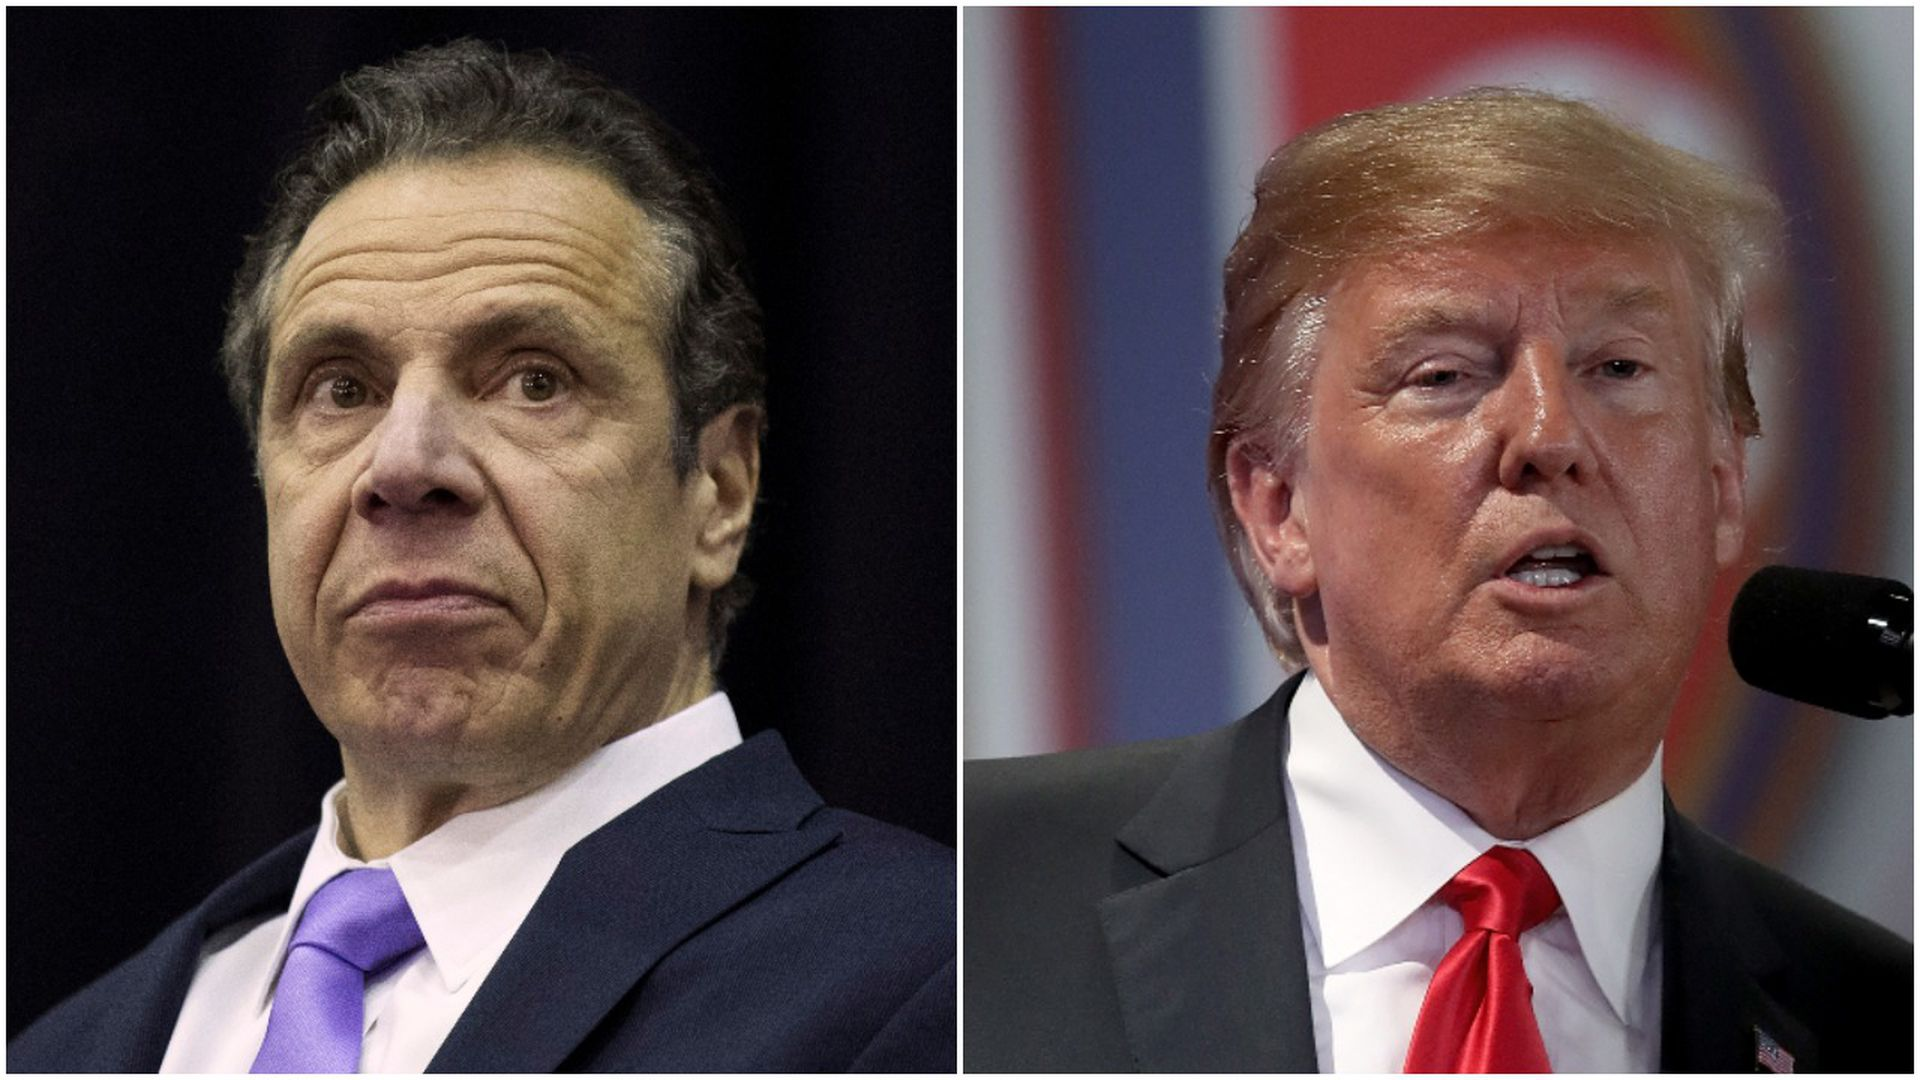 Close ups of New York Gov Andrew Cuomo on left, Donald Trump on right